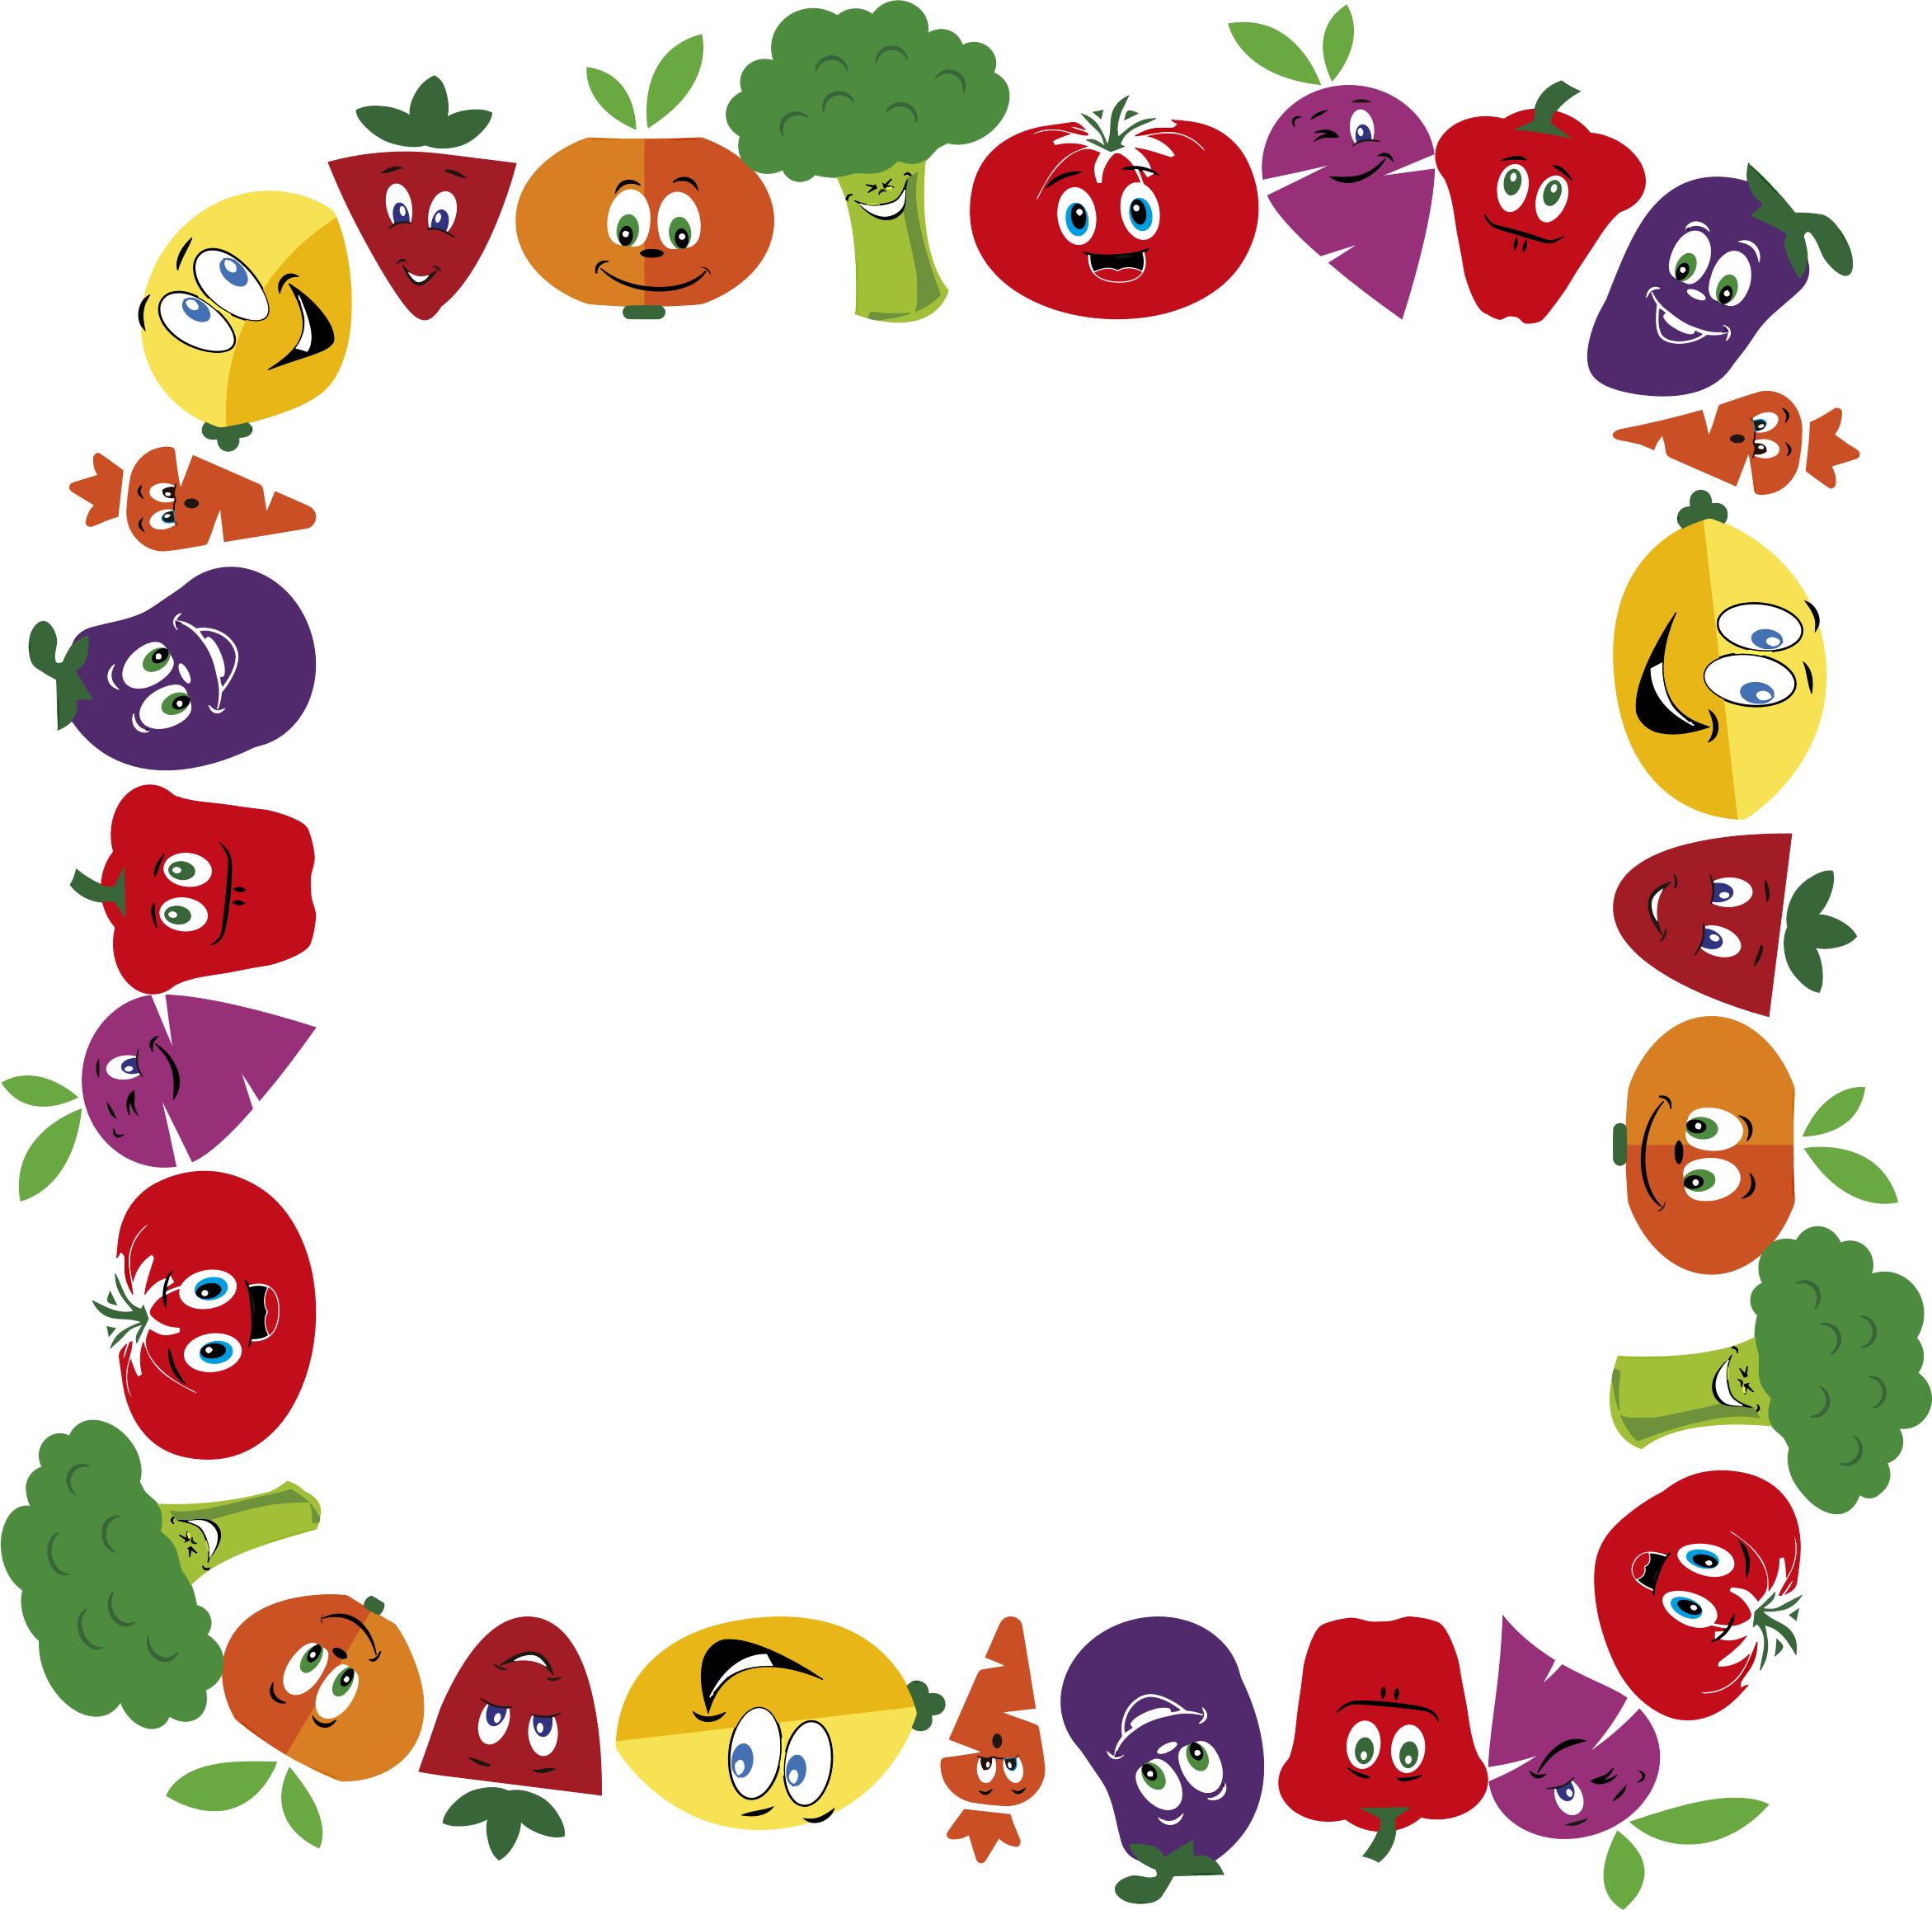 Fruits clipart frame. Anthropomorphic and vegetables large